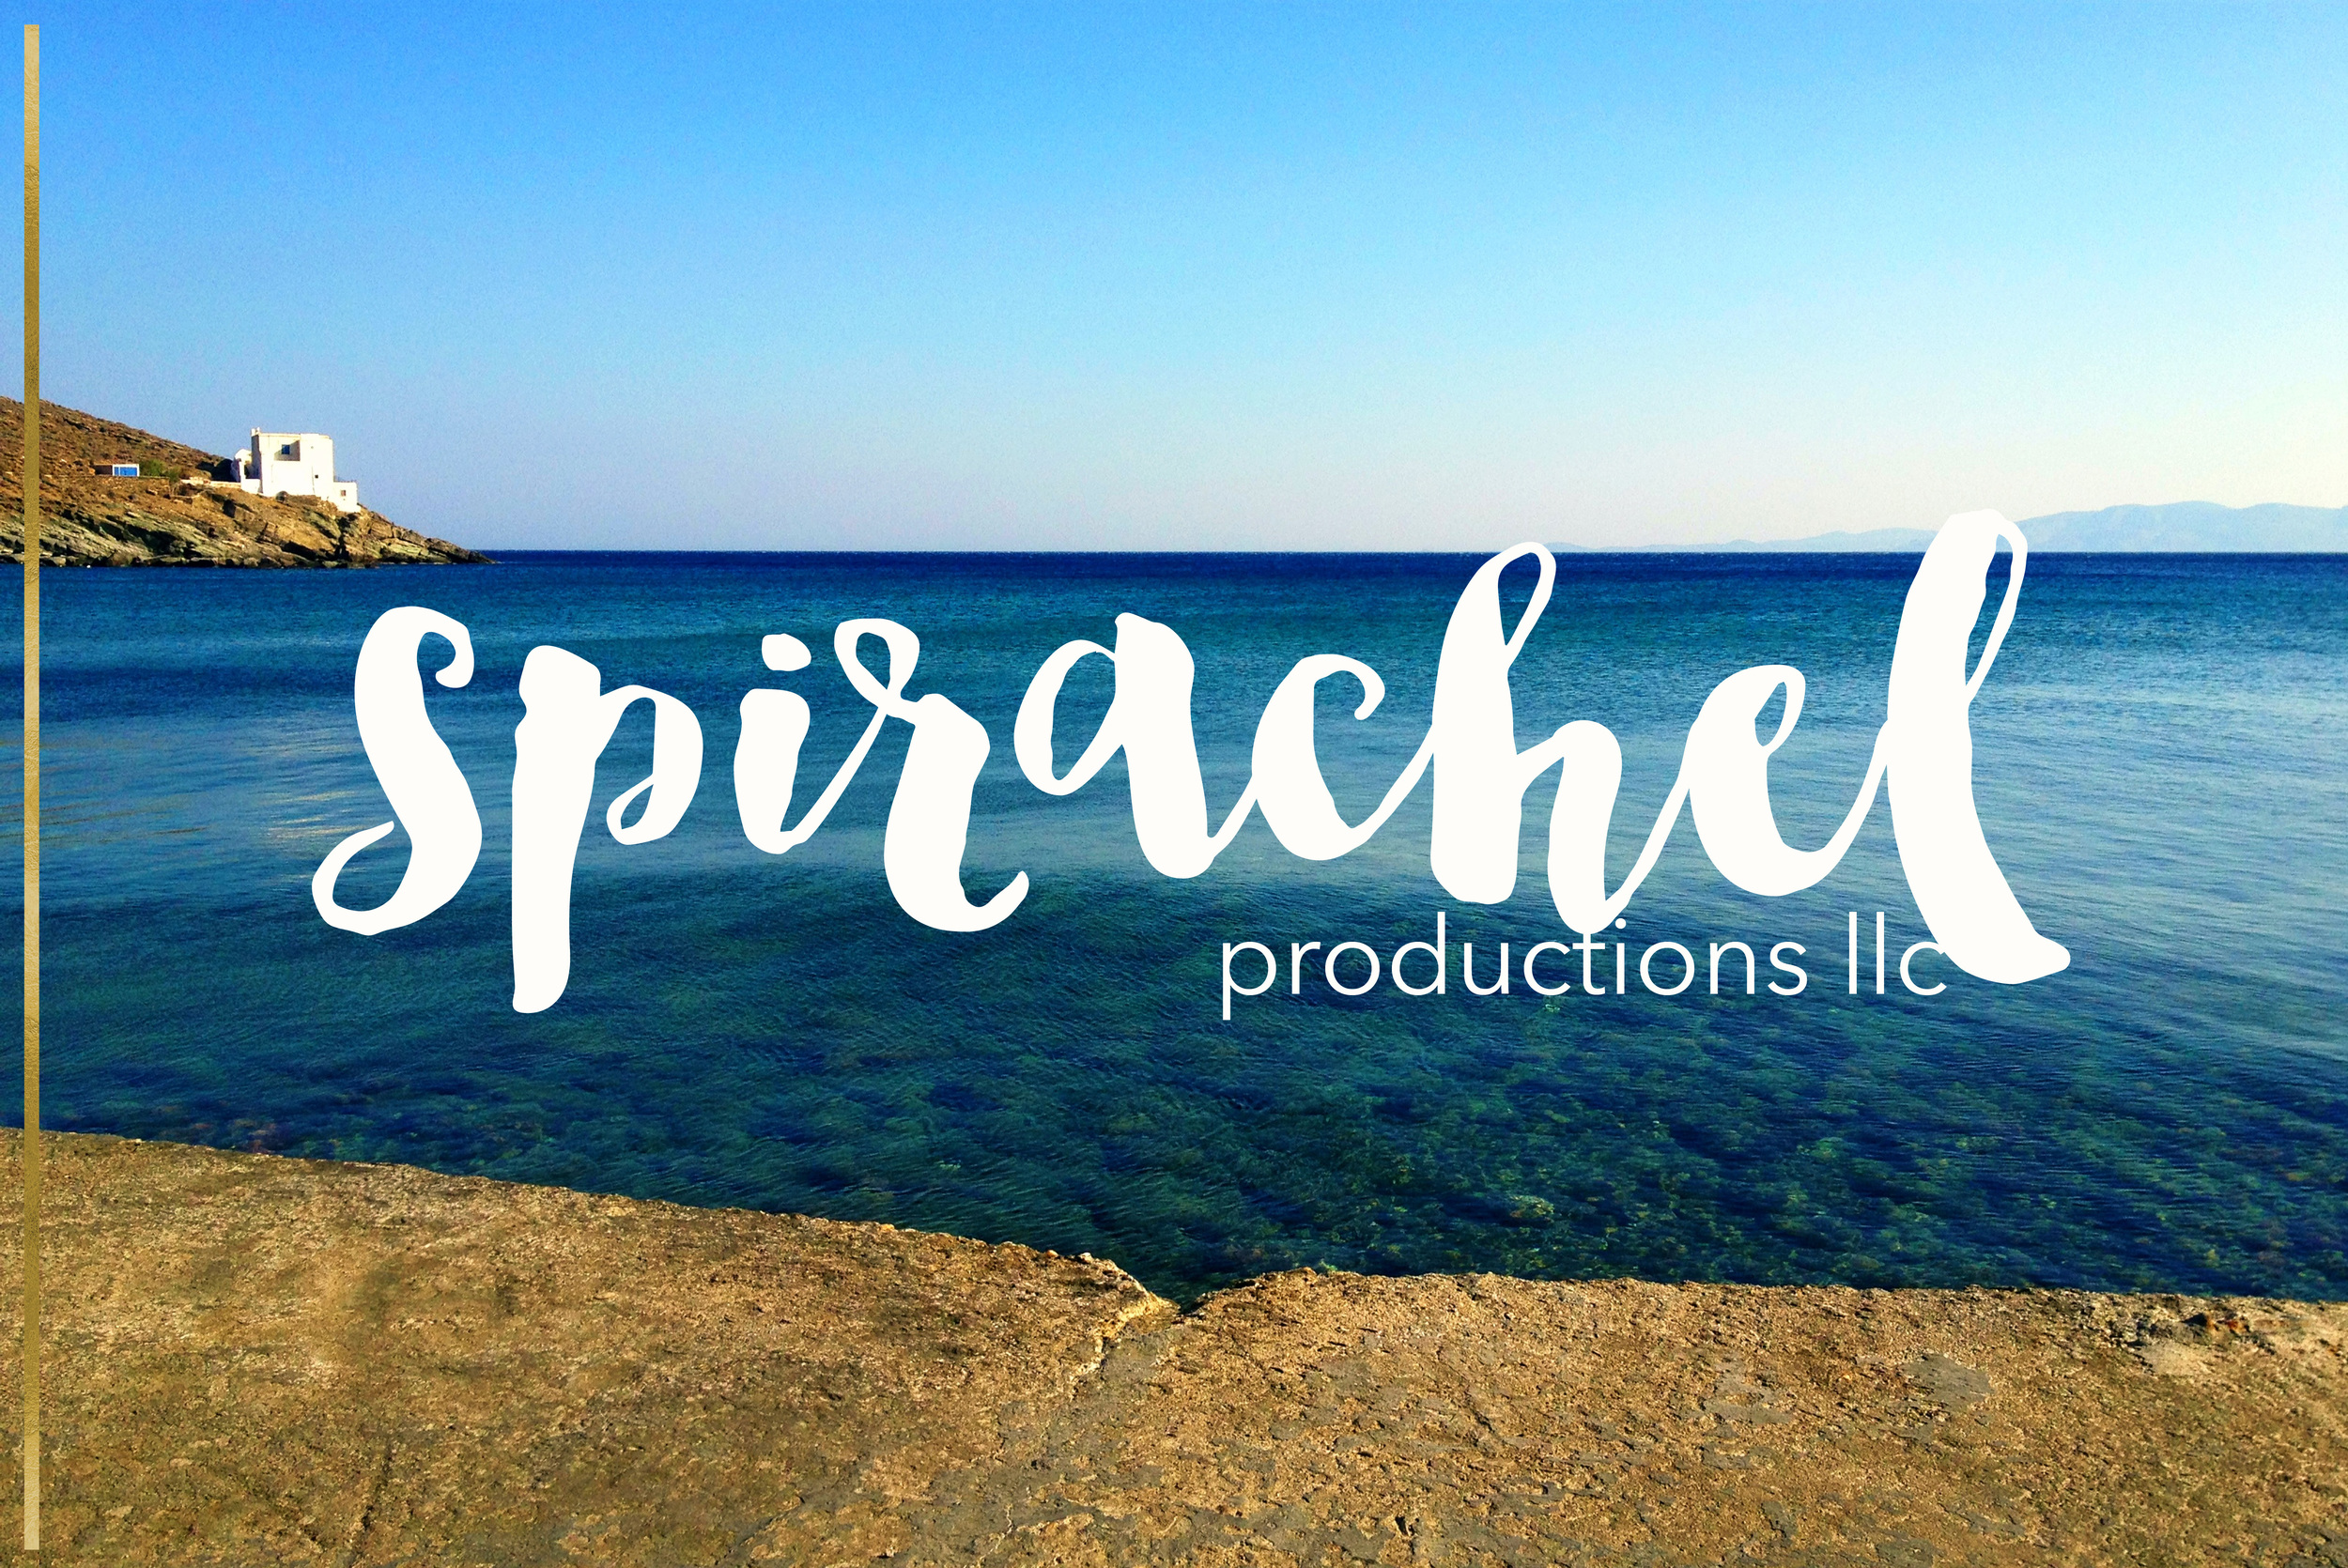 spirachel productions llc logo.jpg